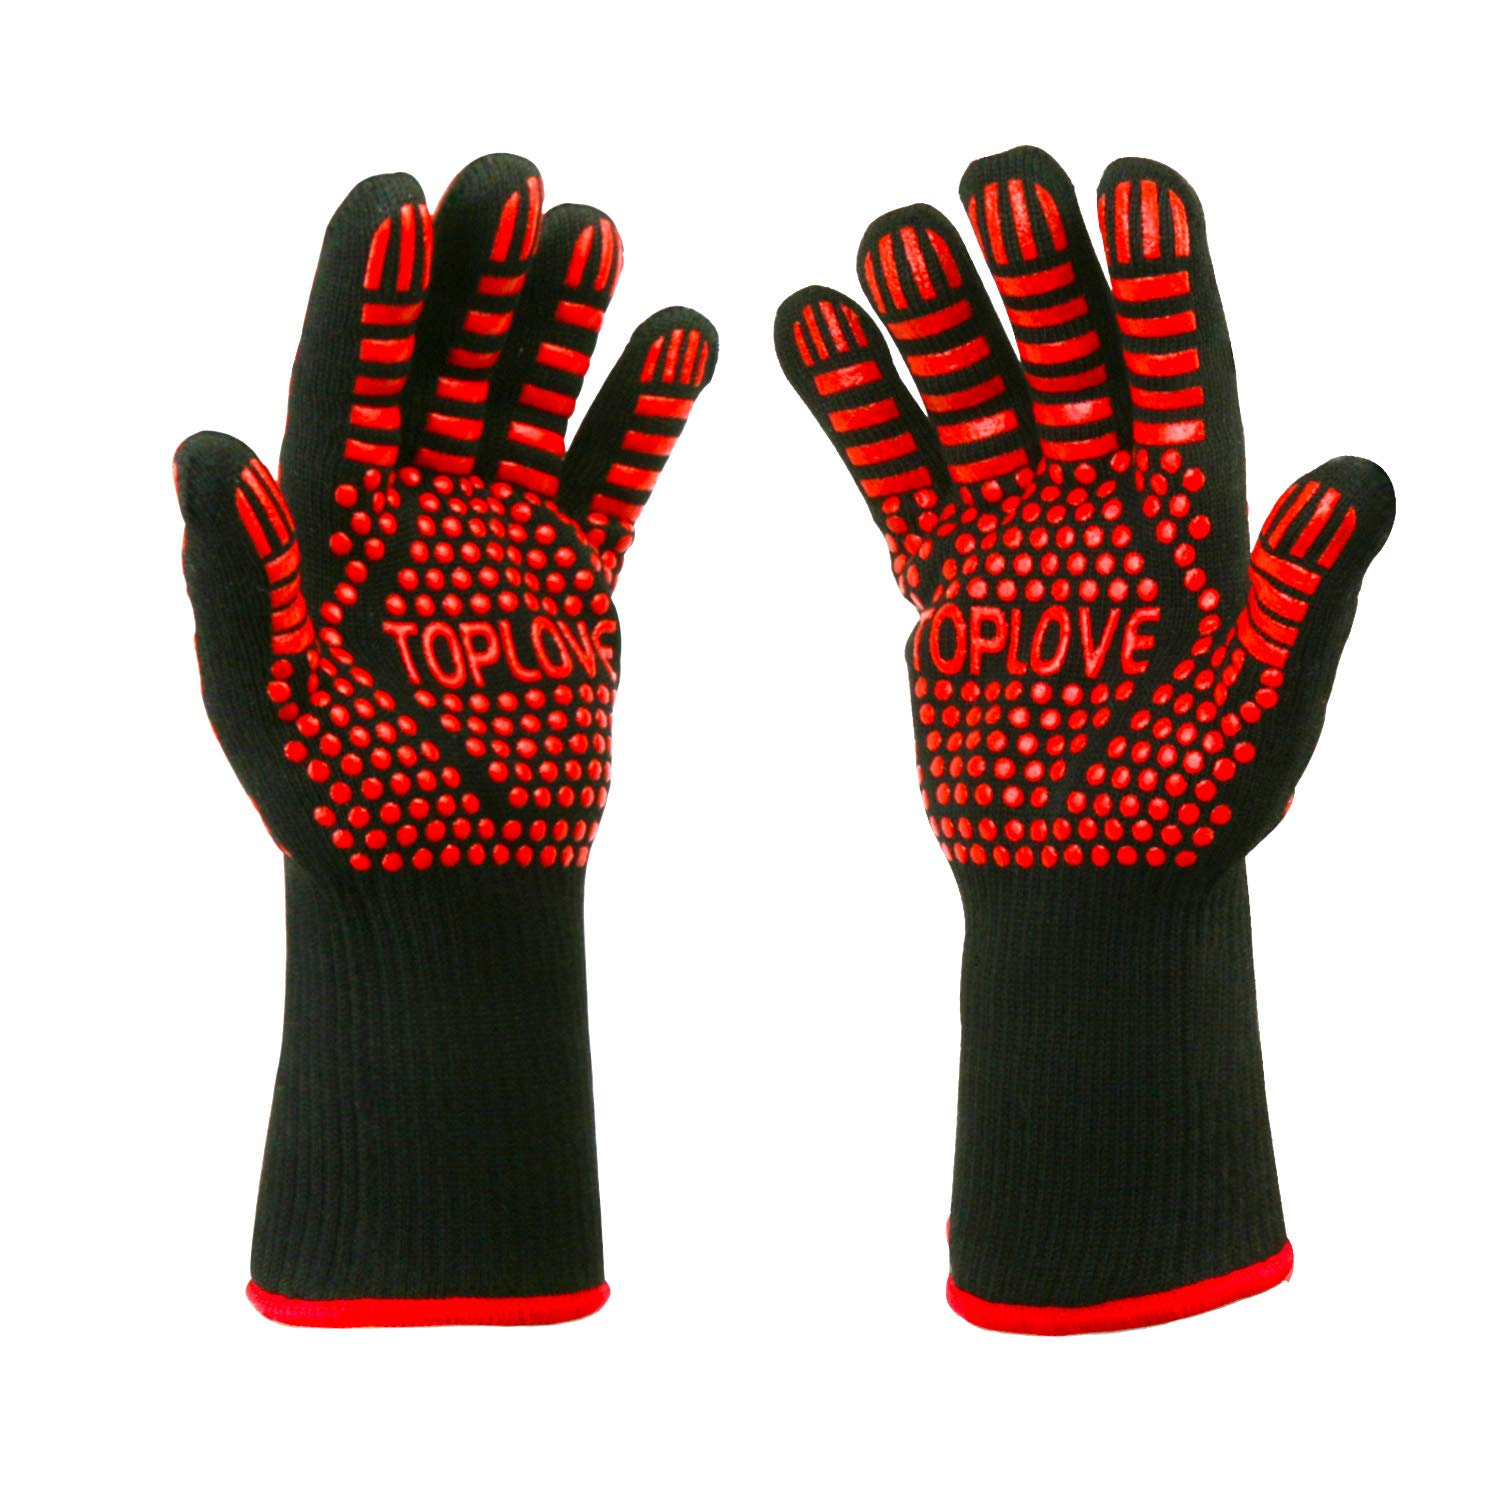 BBQ Cooking Gloves [1472℉ NEWEST] Heat Insulated Grill Glove - EN407/EN420 CE Protective Oven Mitt Extreme Heat Resistant Grilling Glove for Baking - Heatproof Adiabatic Silicone Glove, 1 Pair (Black) ASKALI